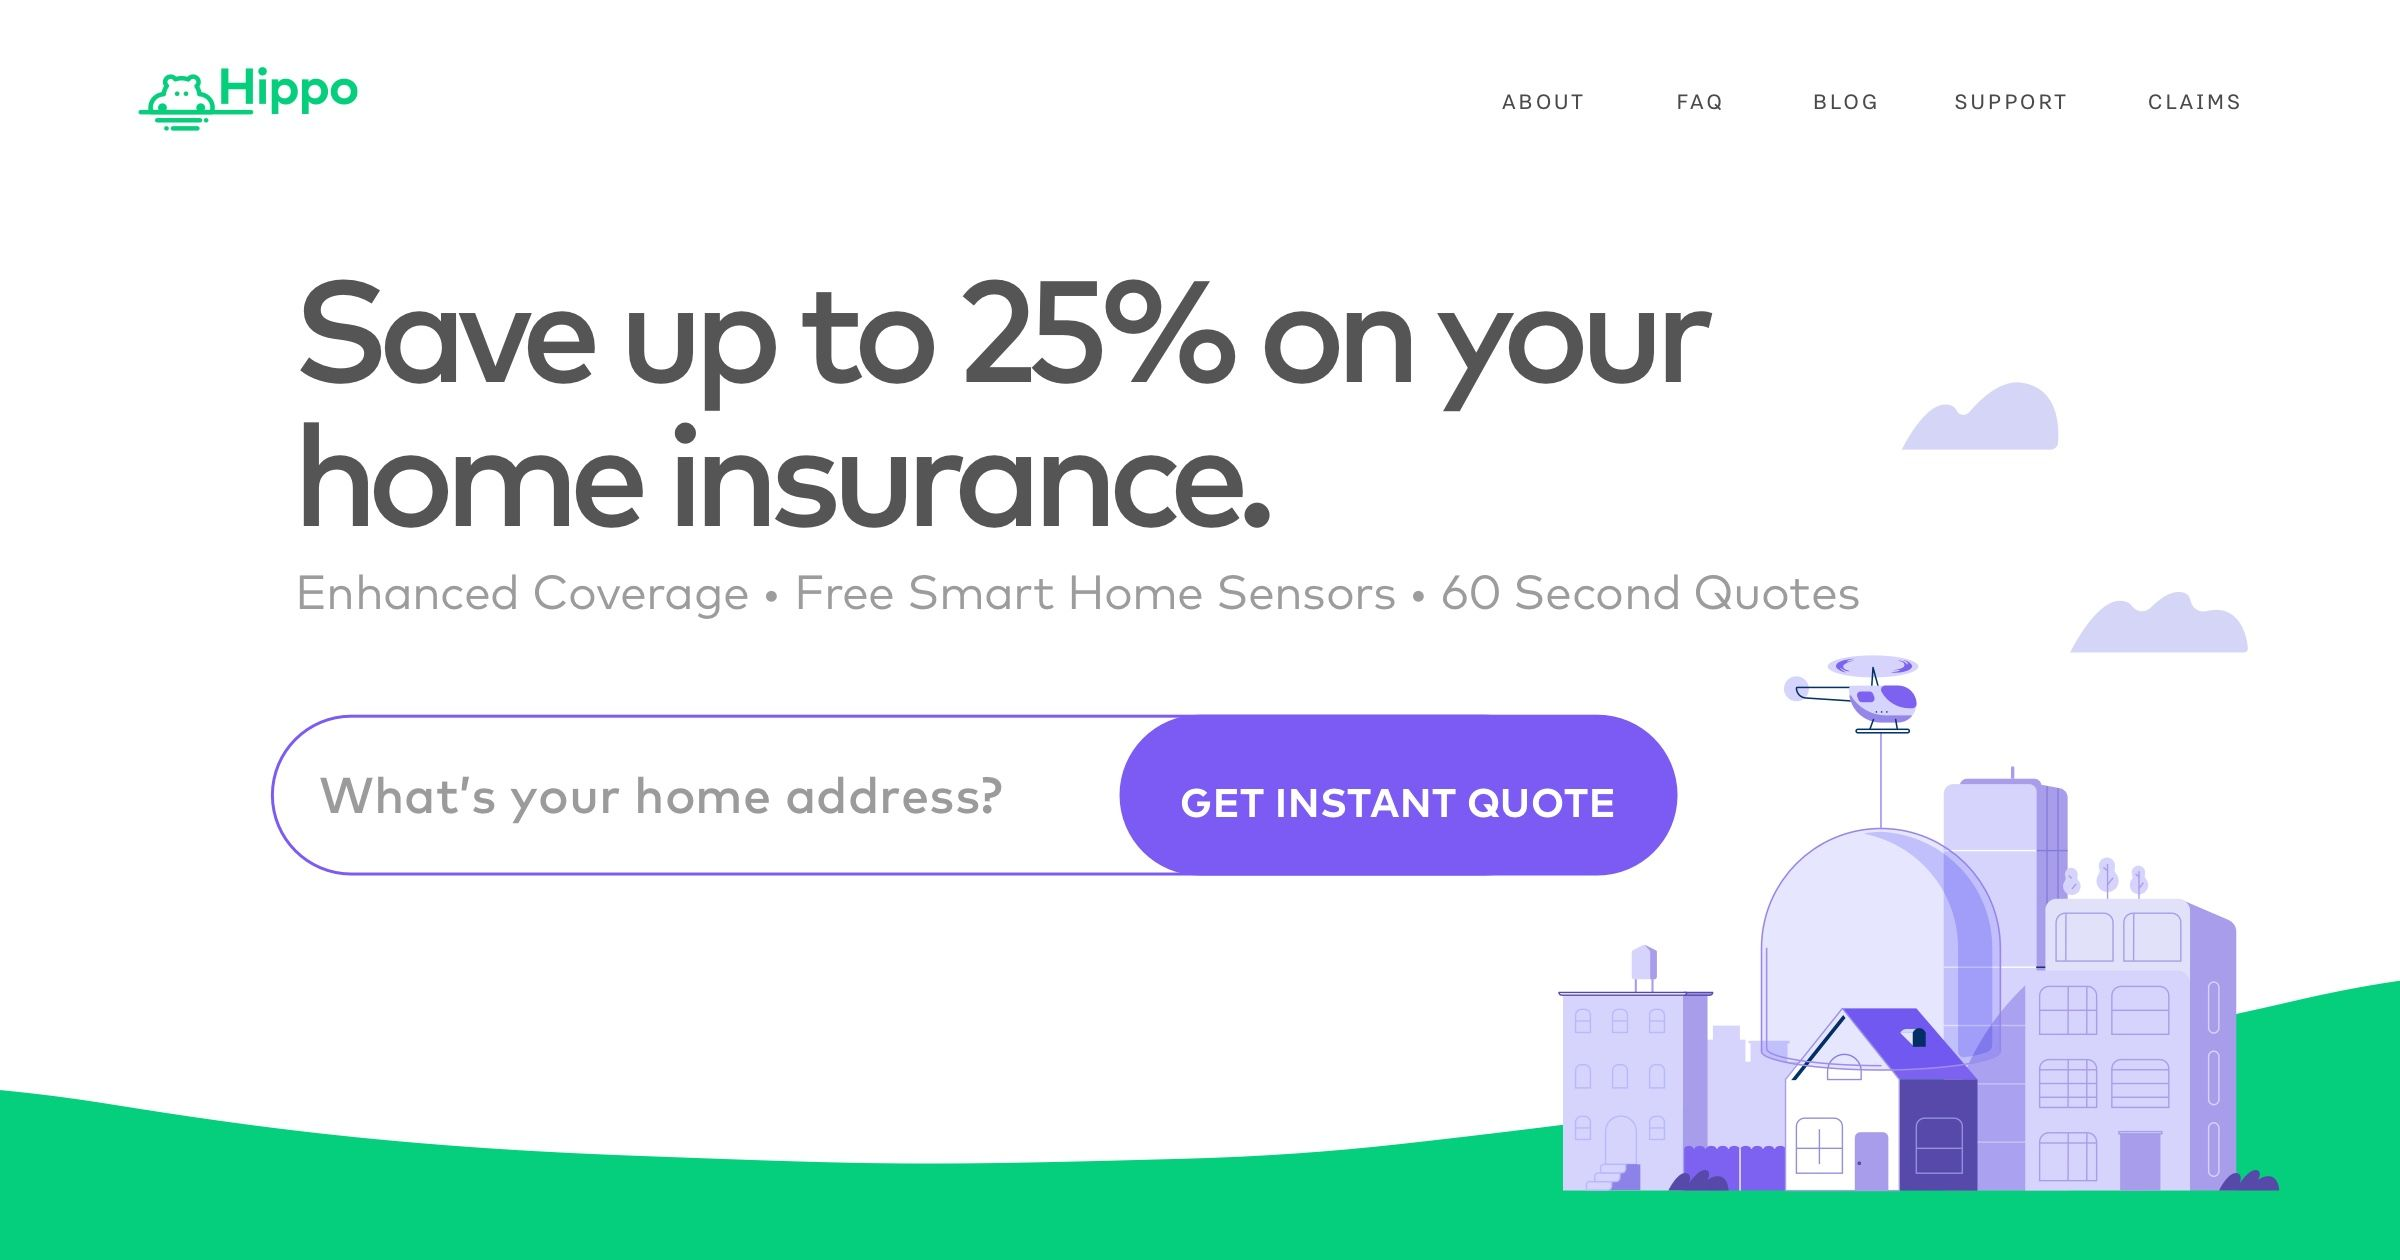 Simpler Smarter Home And Condo Insurance For Up To 25 Less Hippo Has Modernized Home Insurance We With Images Home Insurance Quotes Home Insurance Cheap